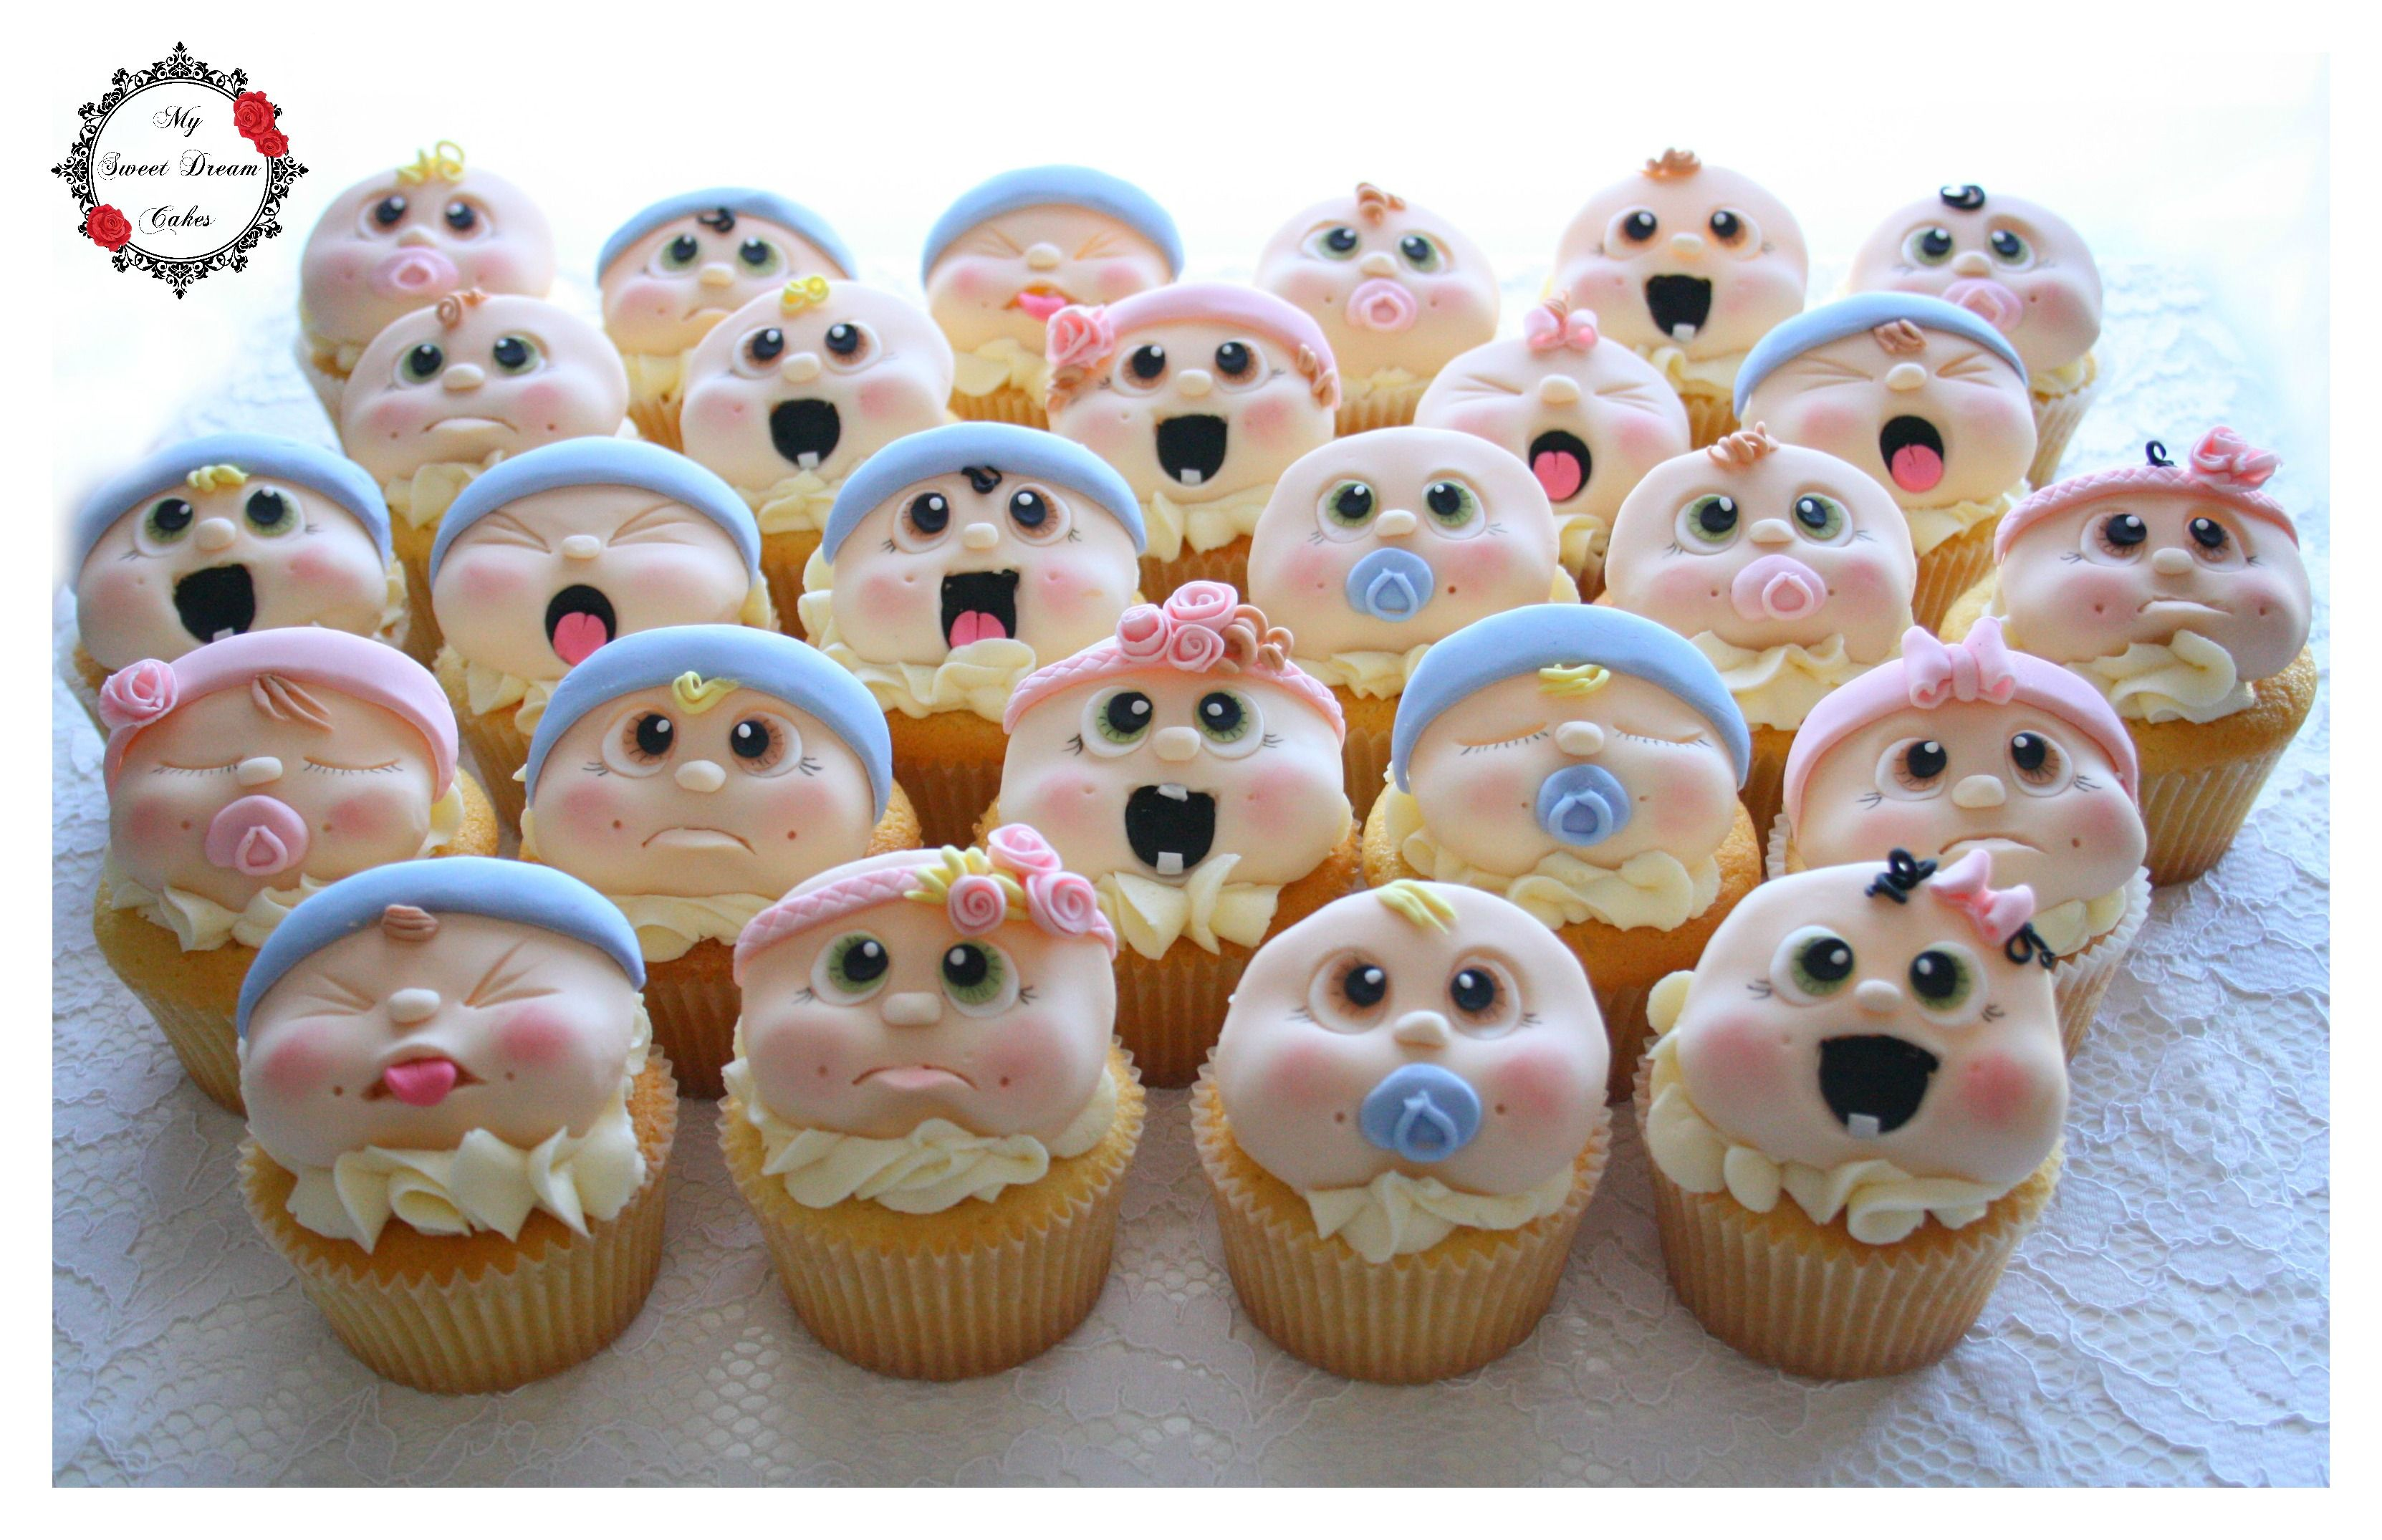 Cute Baby Face Cupcakes By My Sweet Dream Cakes Perth Wa